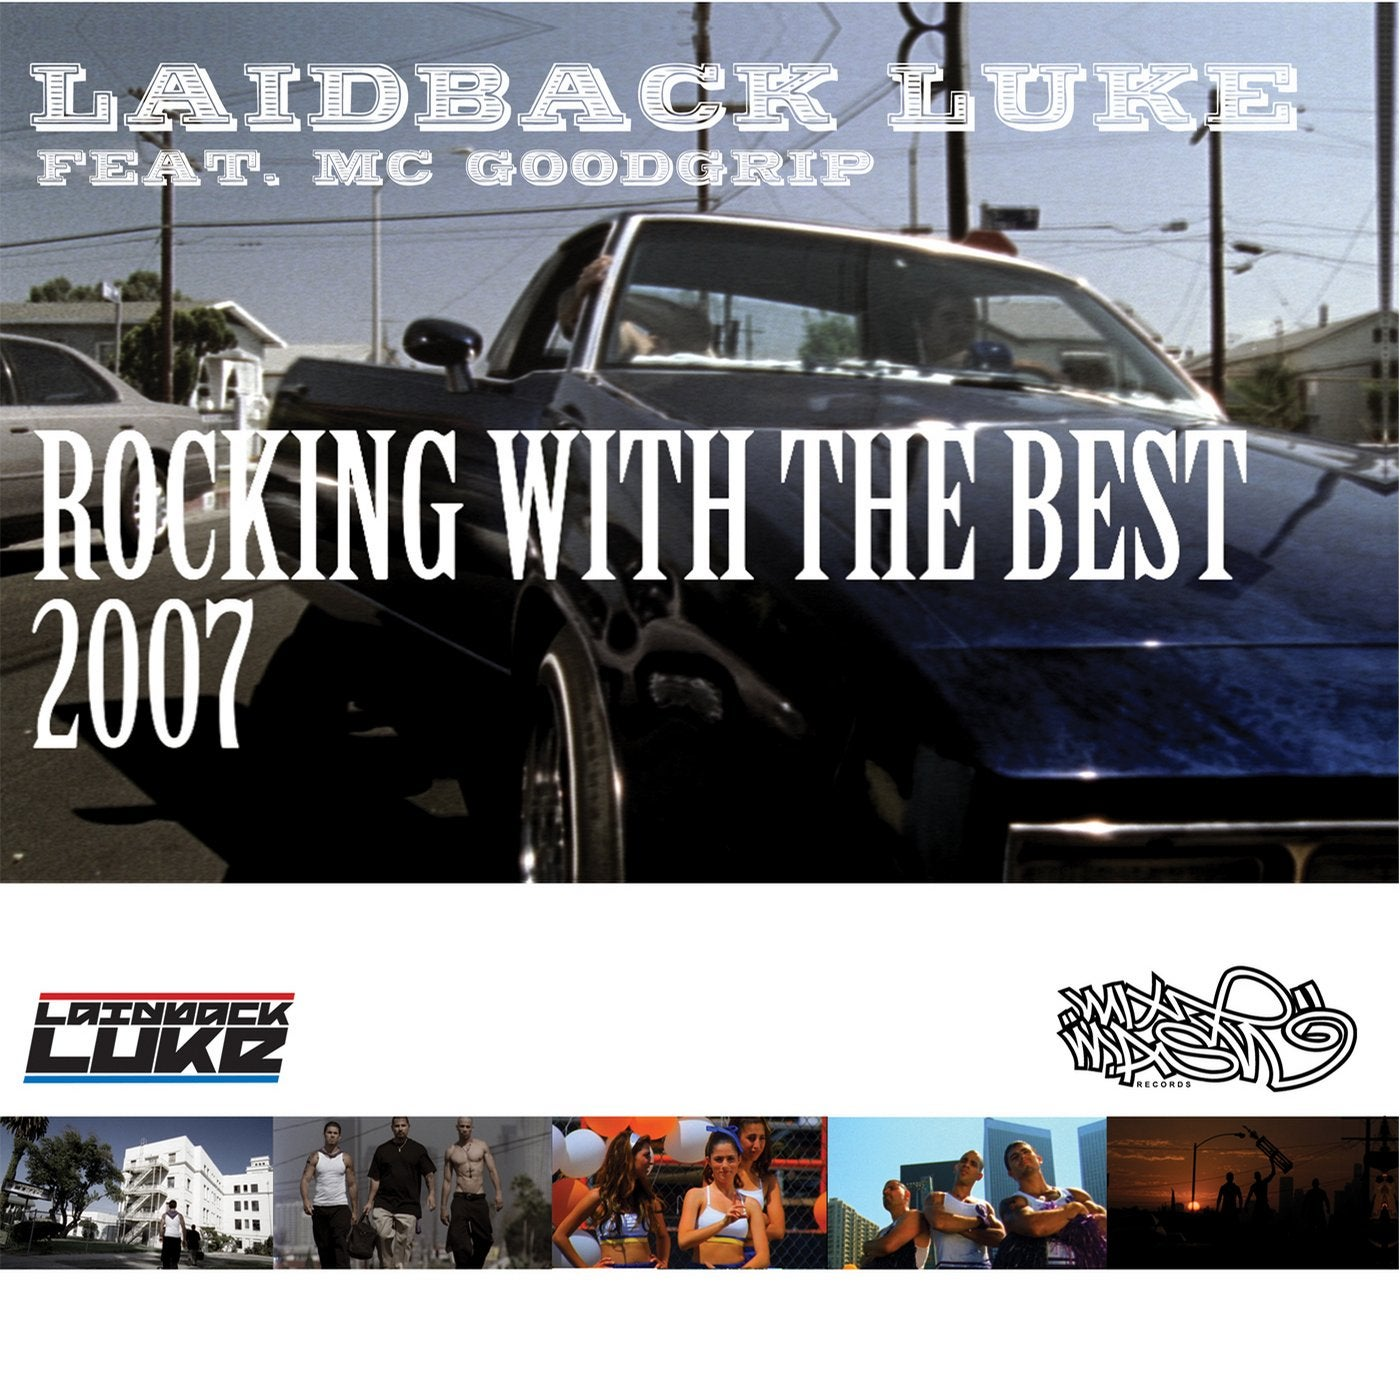 Rocking With The Best 2007 feat. Mc Goodgrip (Acapella)